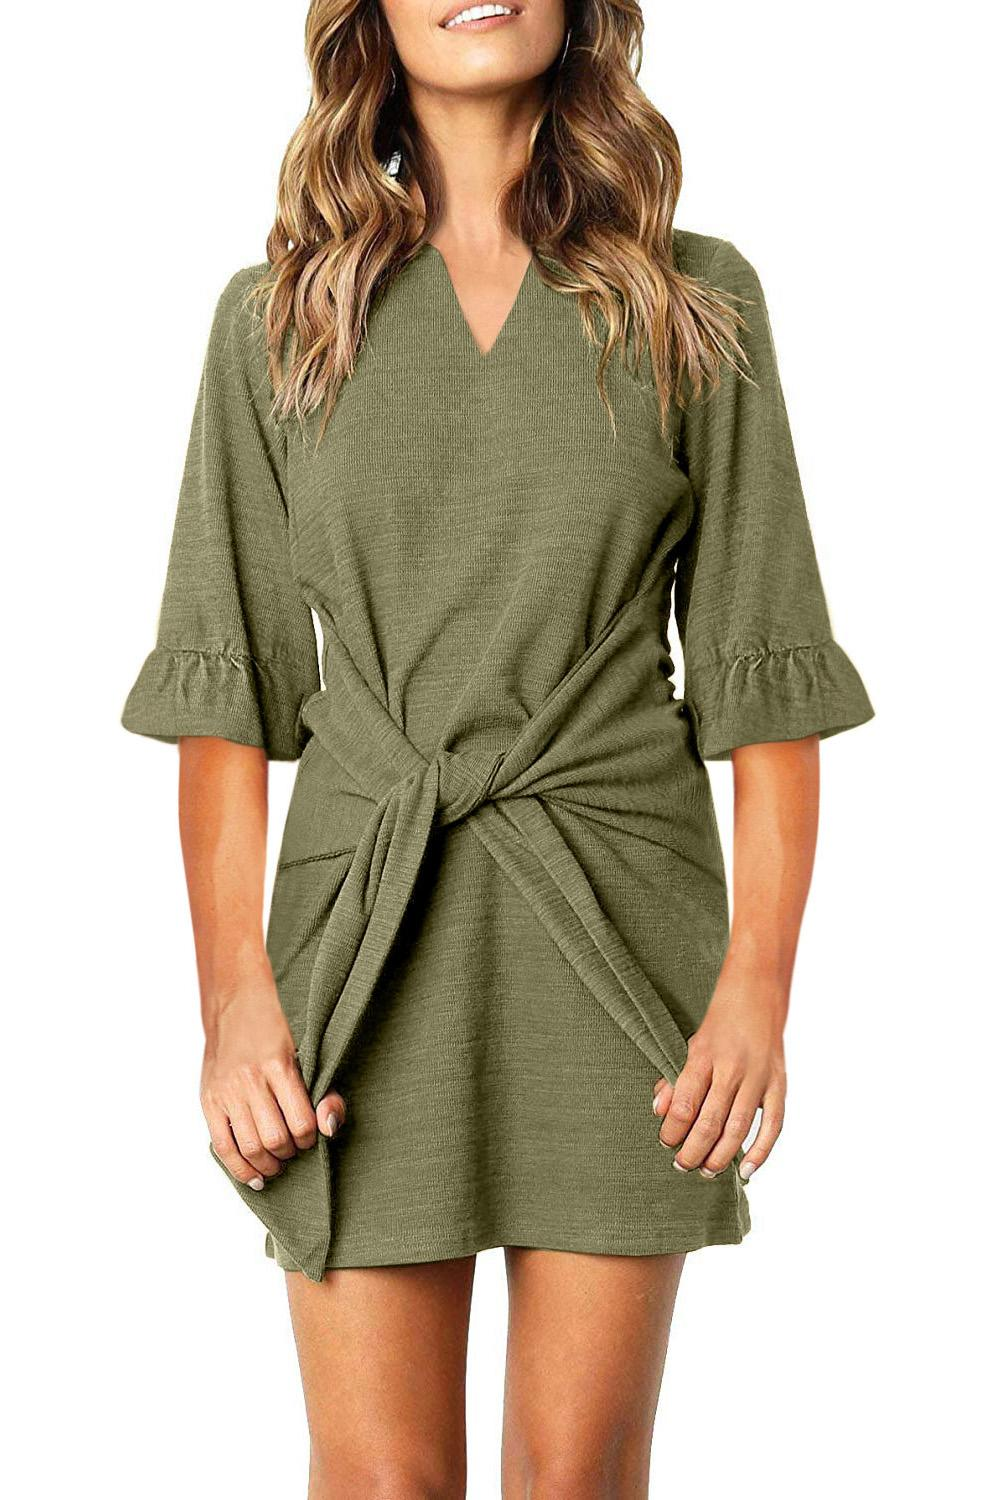 Green V Neck Ruffled Sleeves Waist Tie Mini Dress